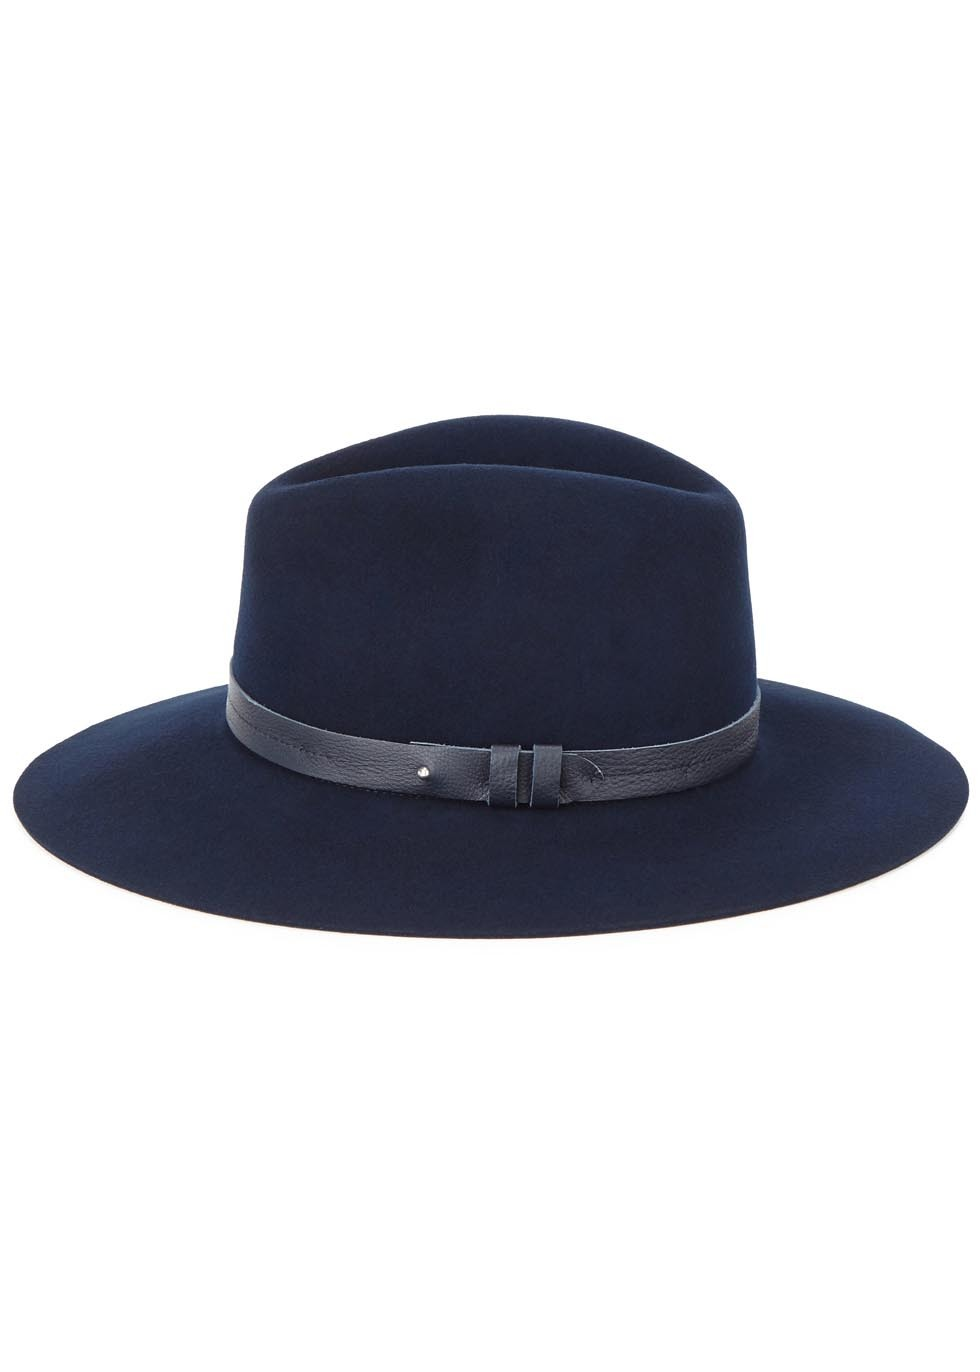 Navy Wool Felt Fedora - predominant colour: navy; occasions: casual; type of pattern: standard; embellishment: ribbon; style: fedora; size: standard; material: felt; pattern: plain; season: s/s 2016; wardrobe: highlight